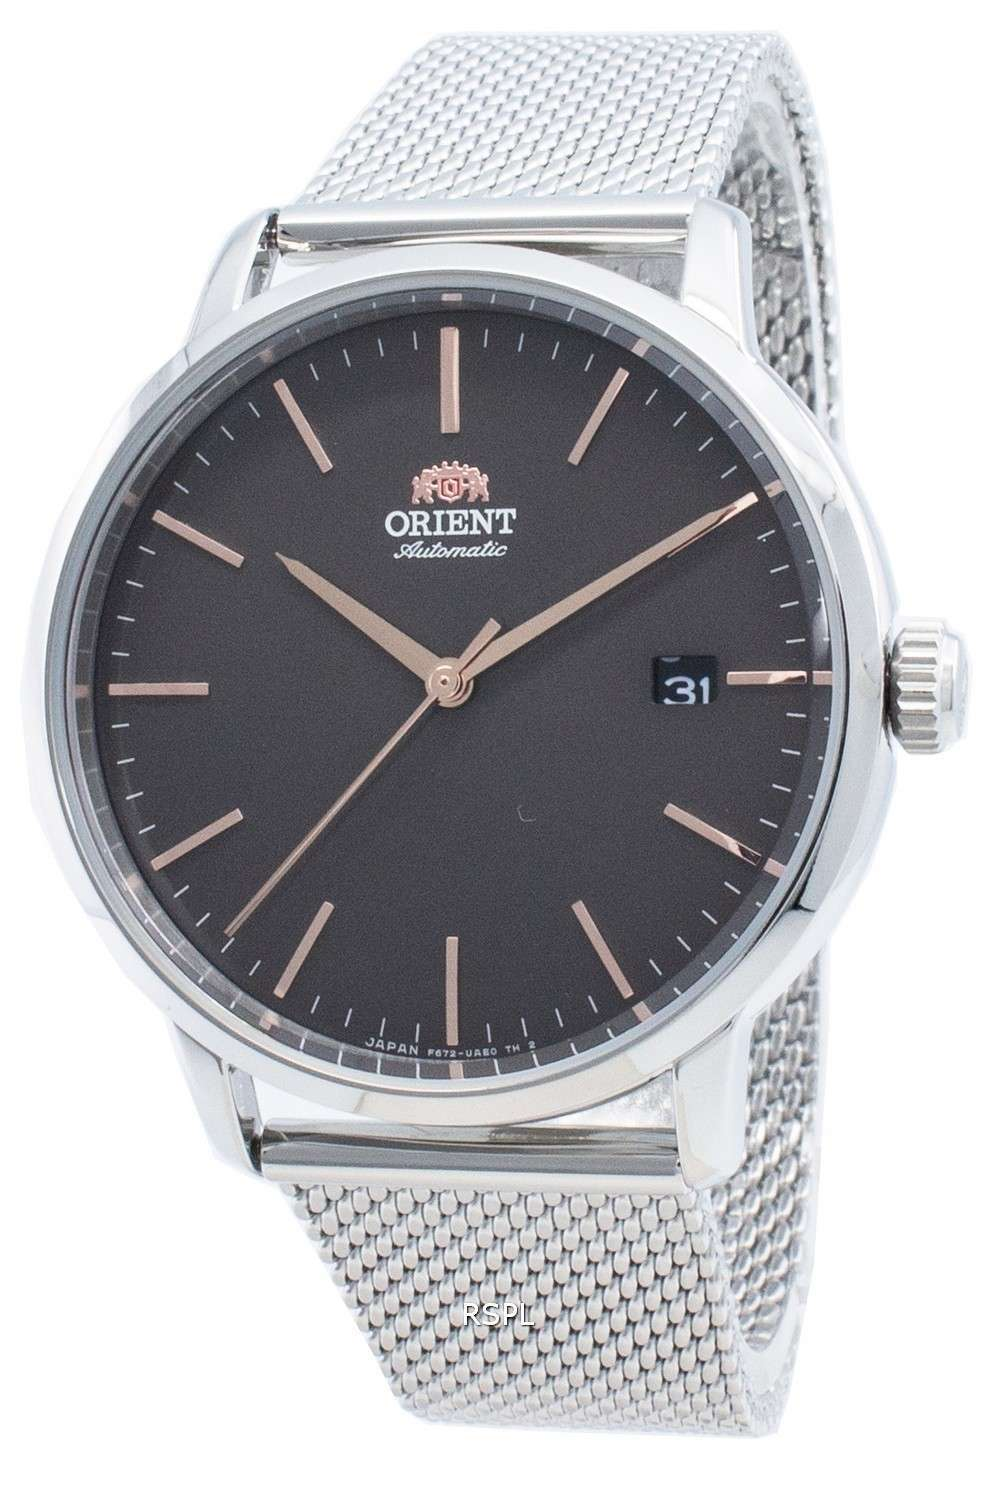 Orient Automatic RA-AC0E05N00C Men's Watch